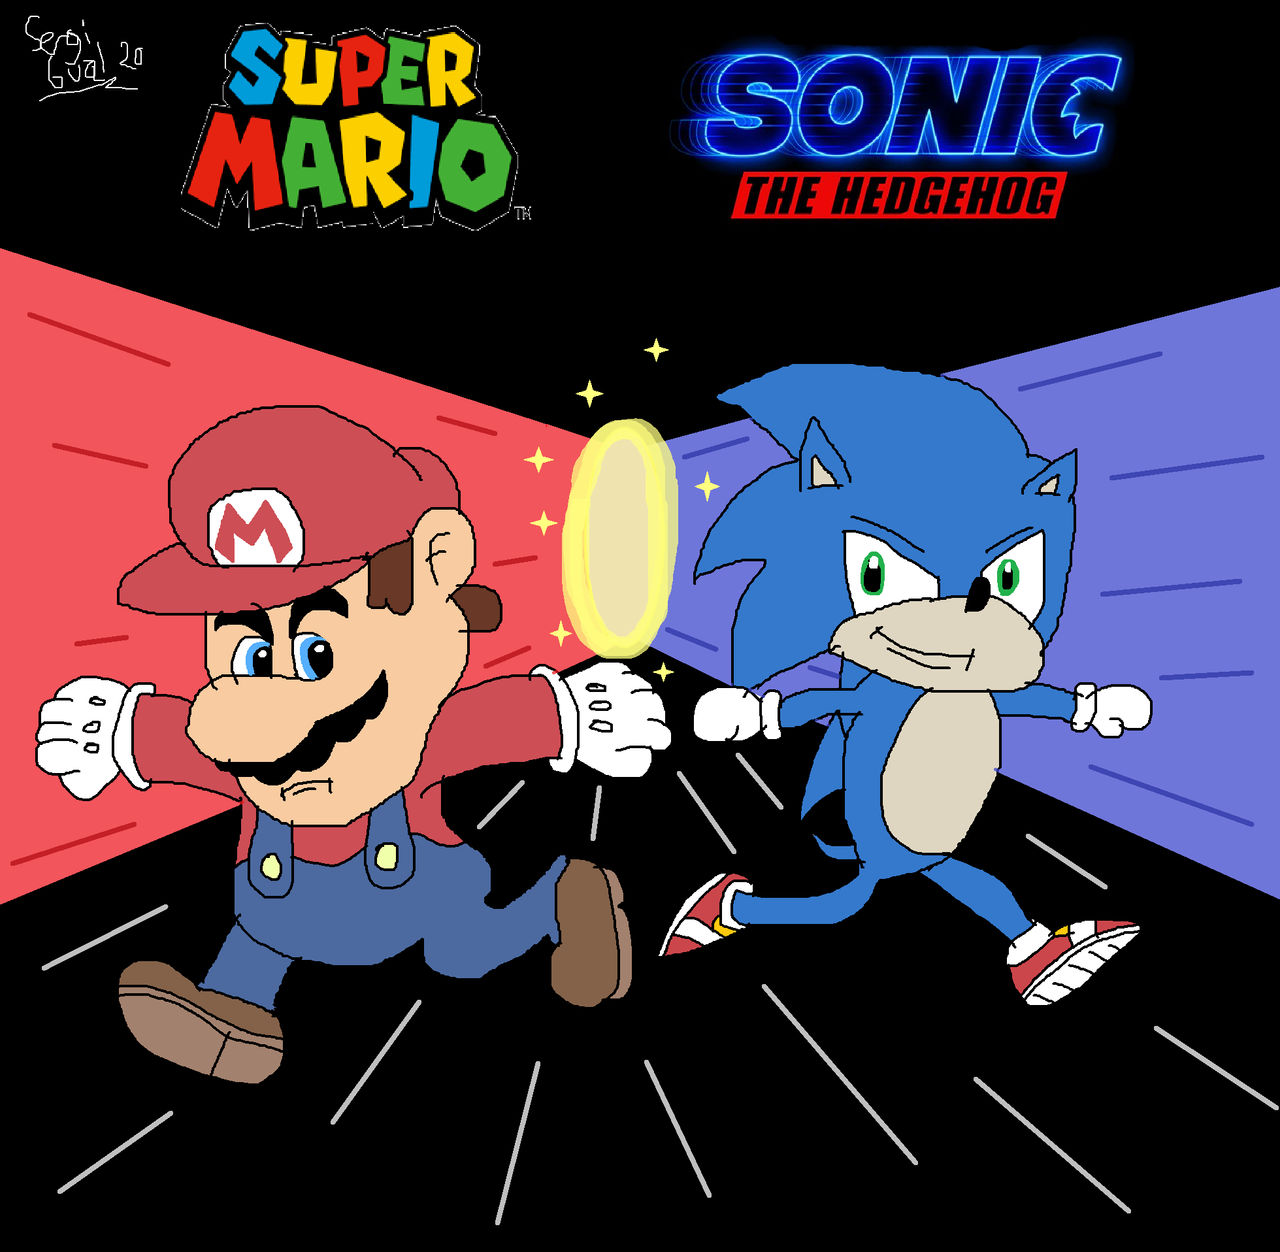 Super Mario And Sonic The Hedgehog 2020 Poster By Sergi1995 On Deviantart